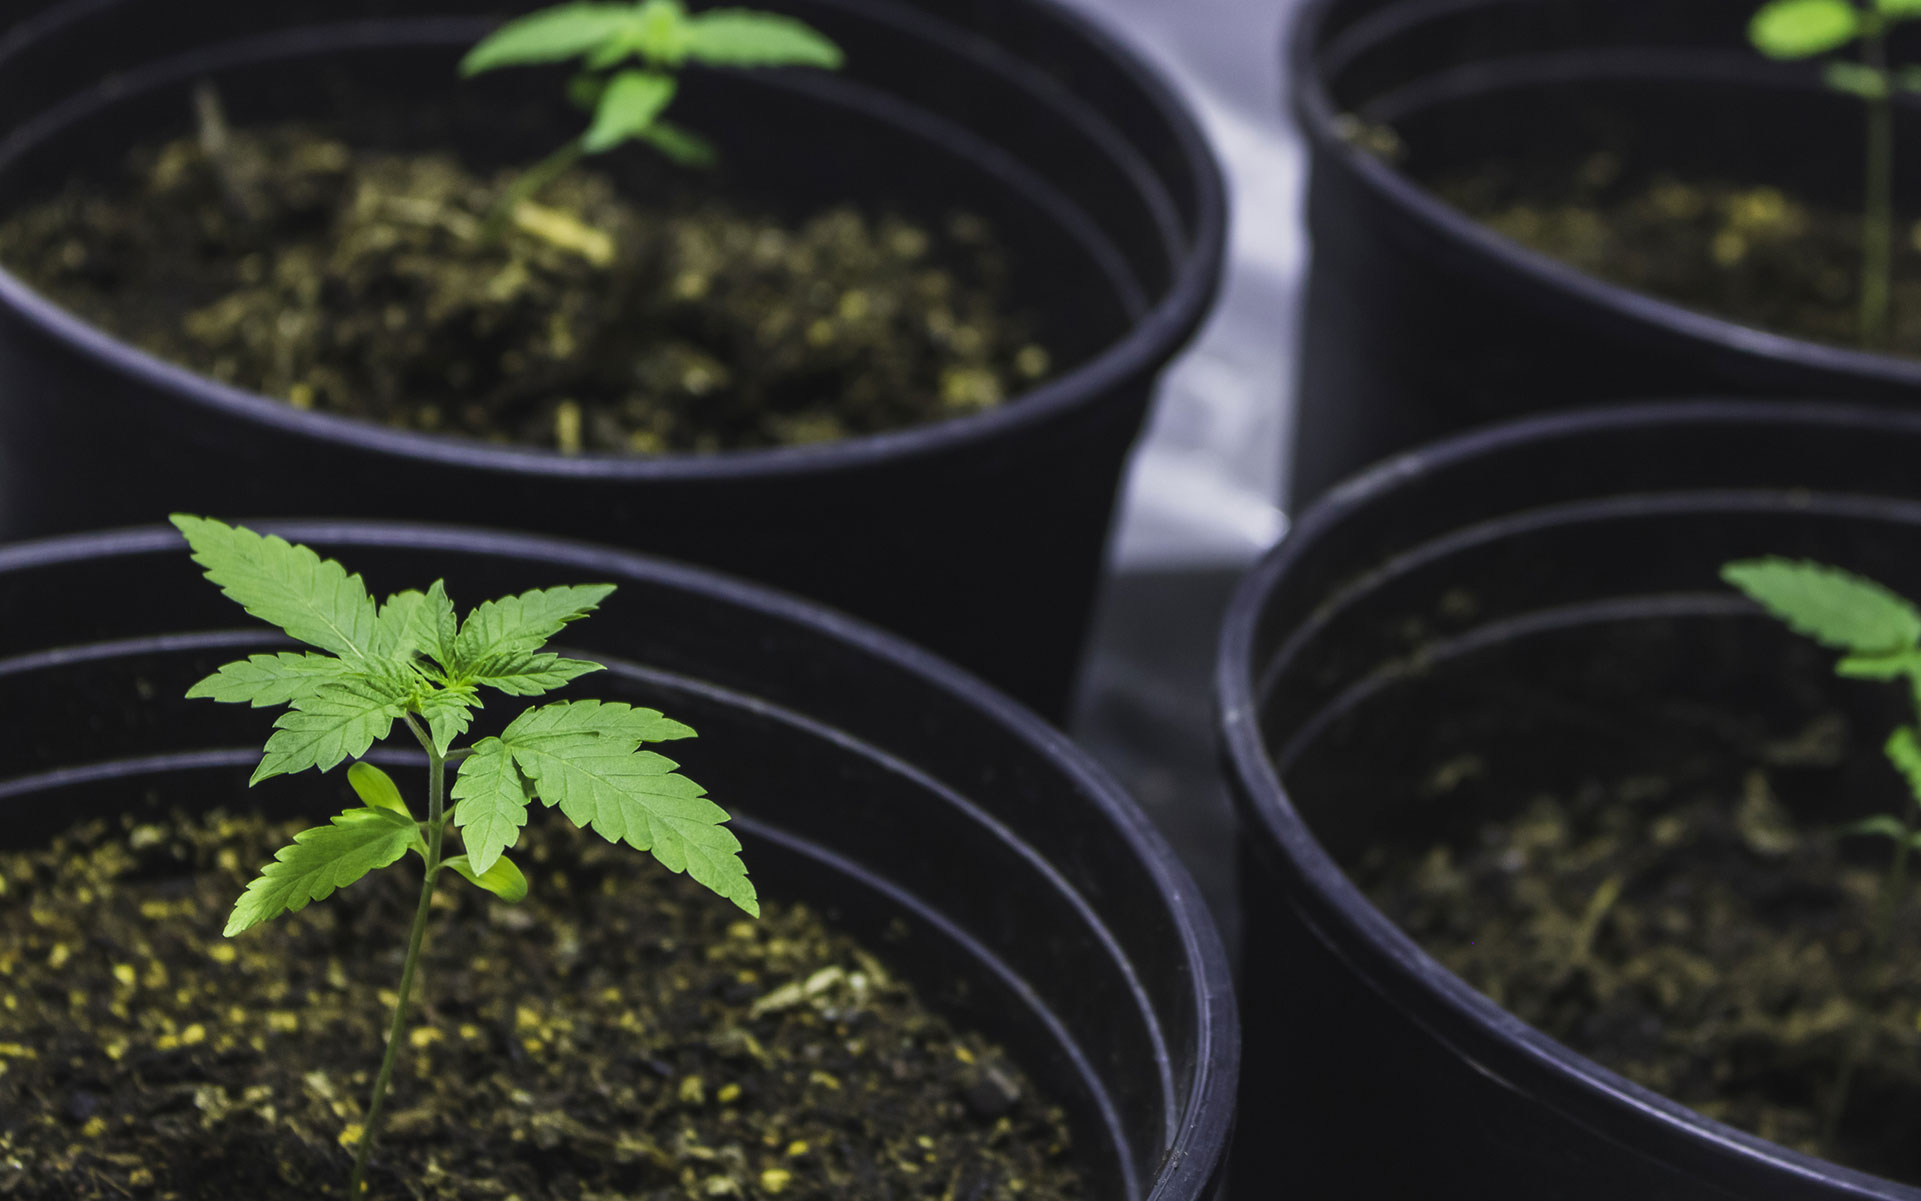 Plug & Play Grow Opps Make Cannabis Cultivation Easy for Canadians